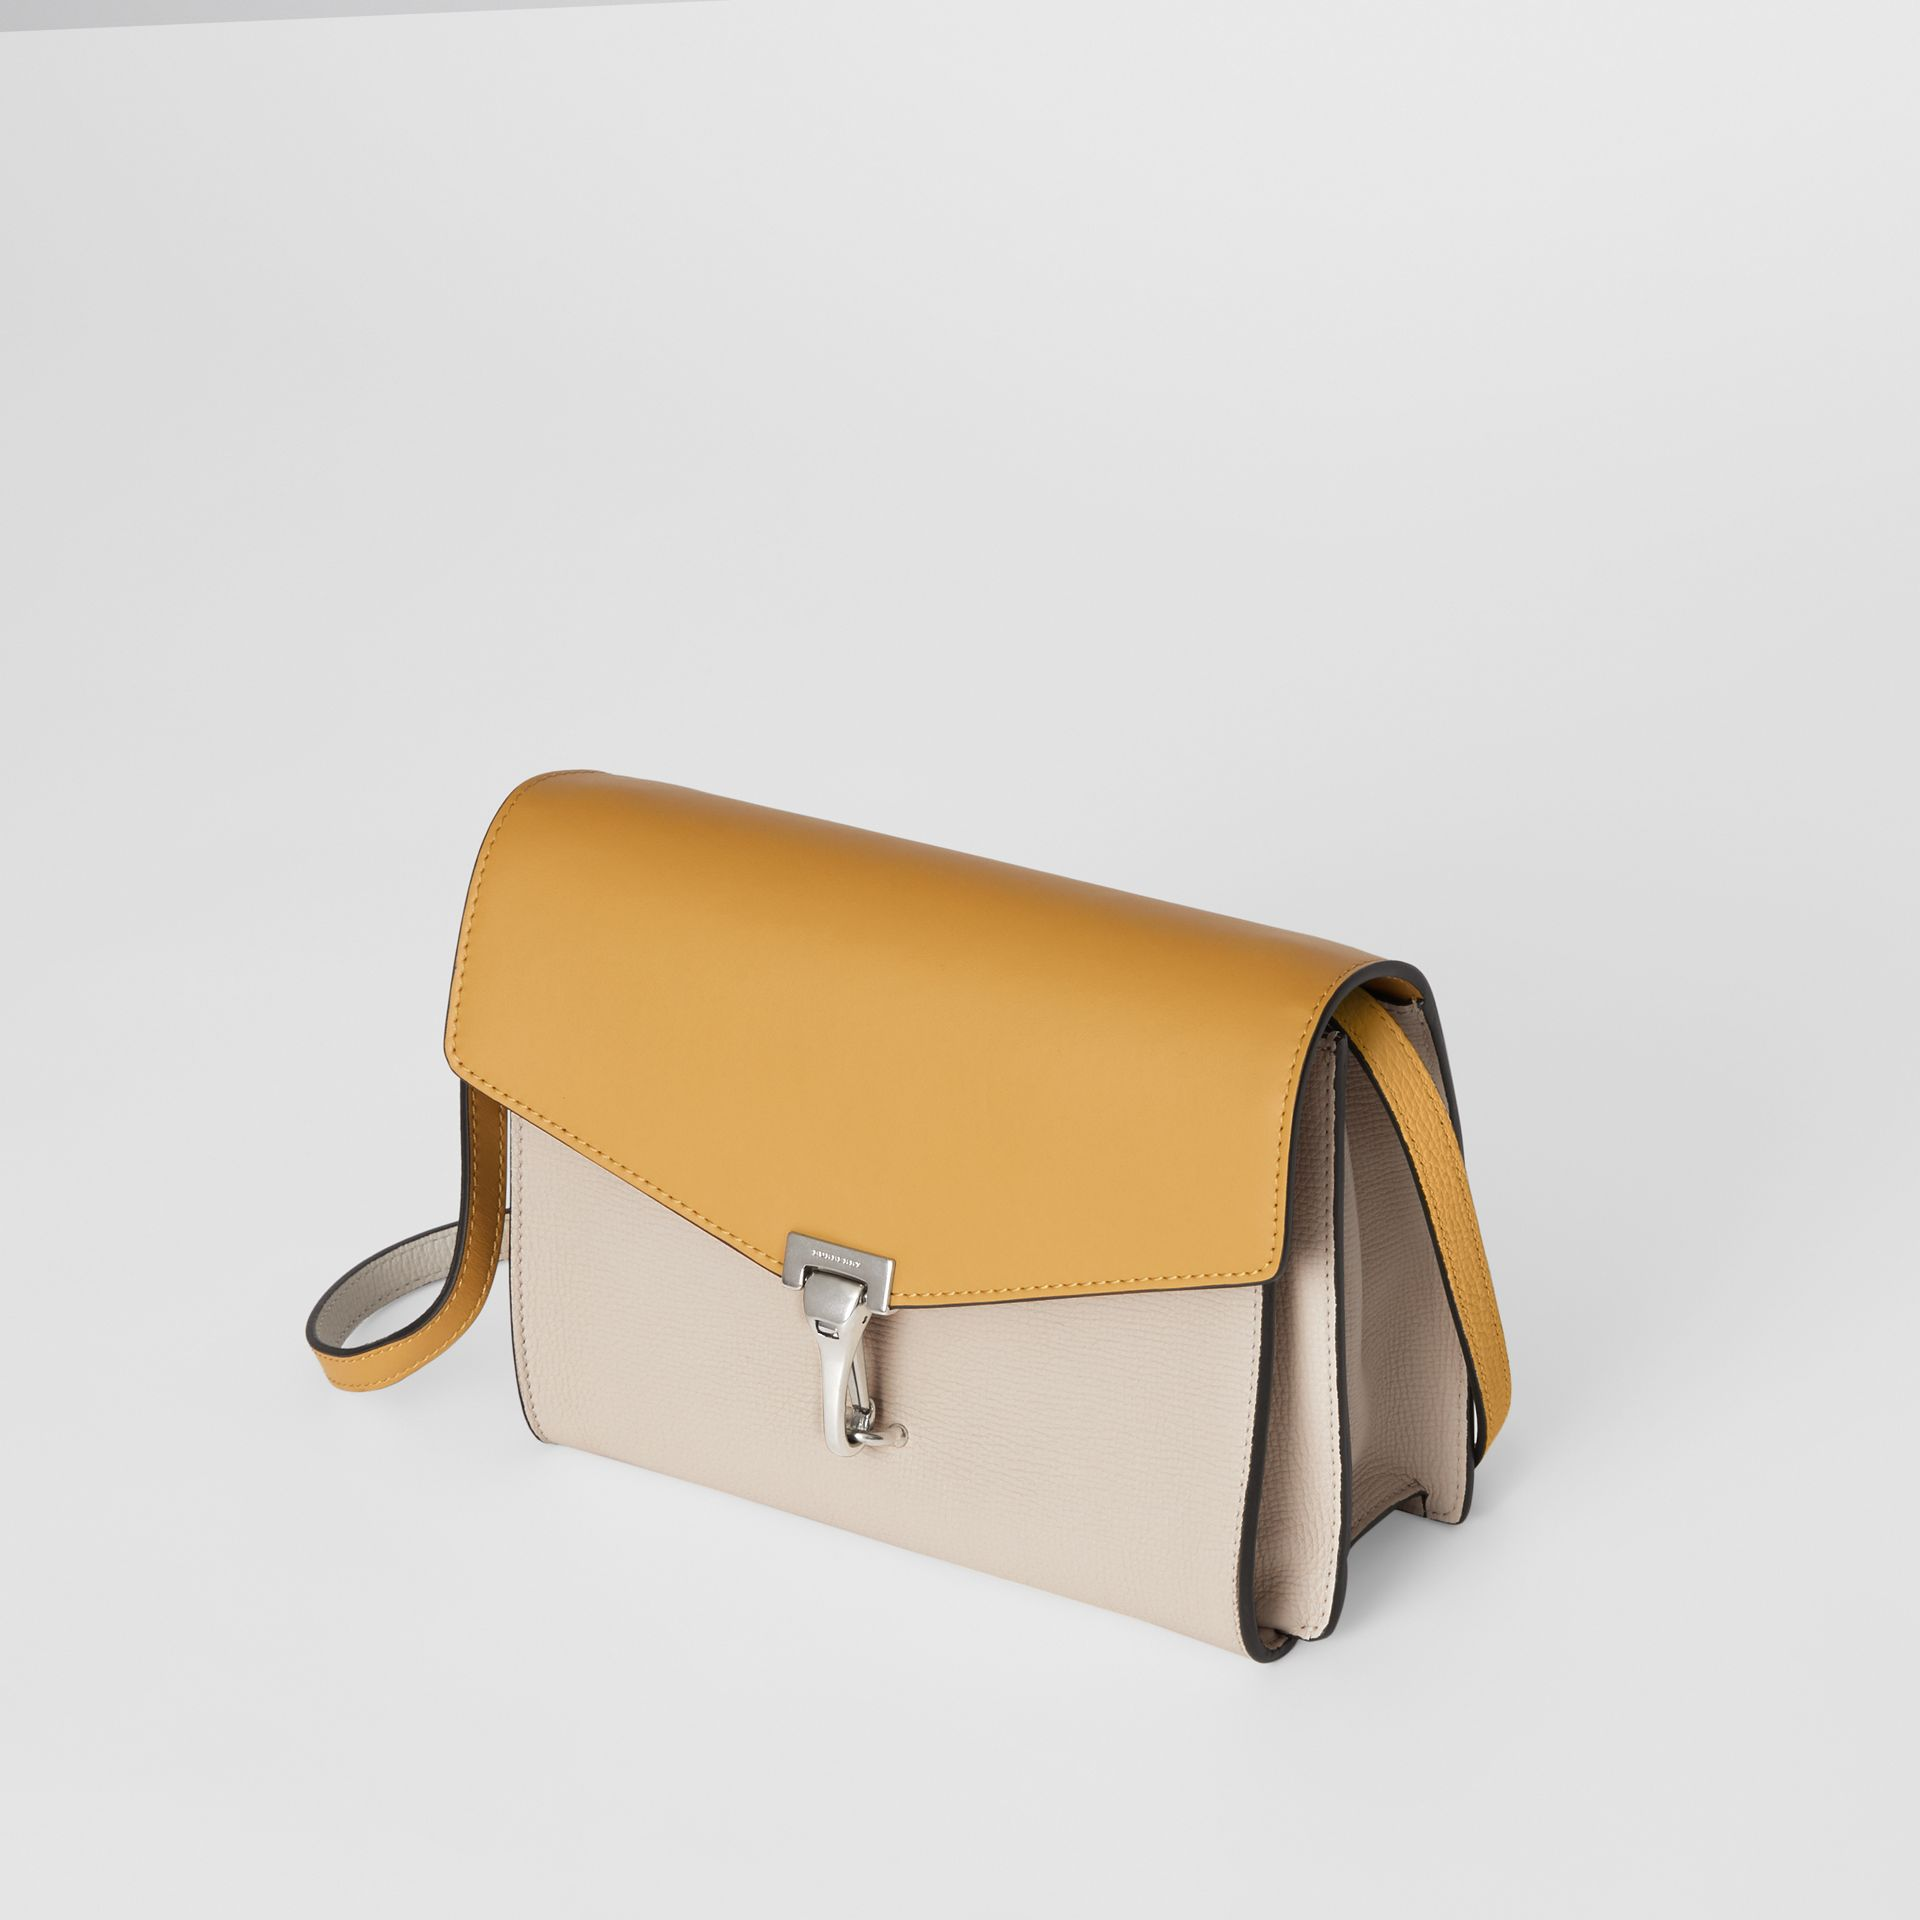 Two-tone Leather Crossbody Bag in Limestone/cornflower Yellow - Women | Burberry Hong Kong - gallery image 4